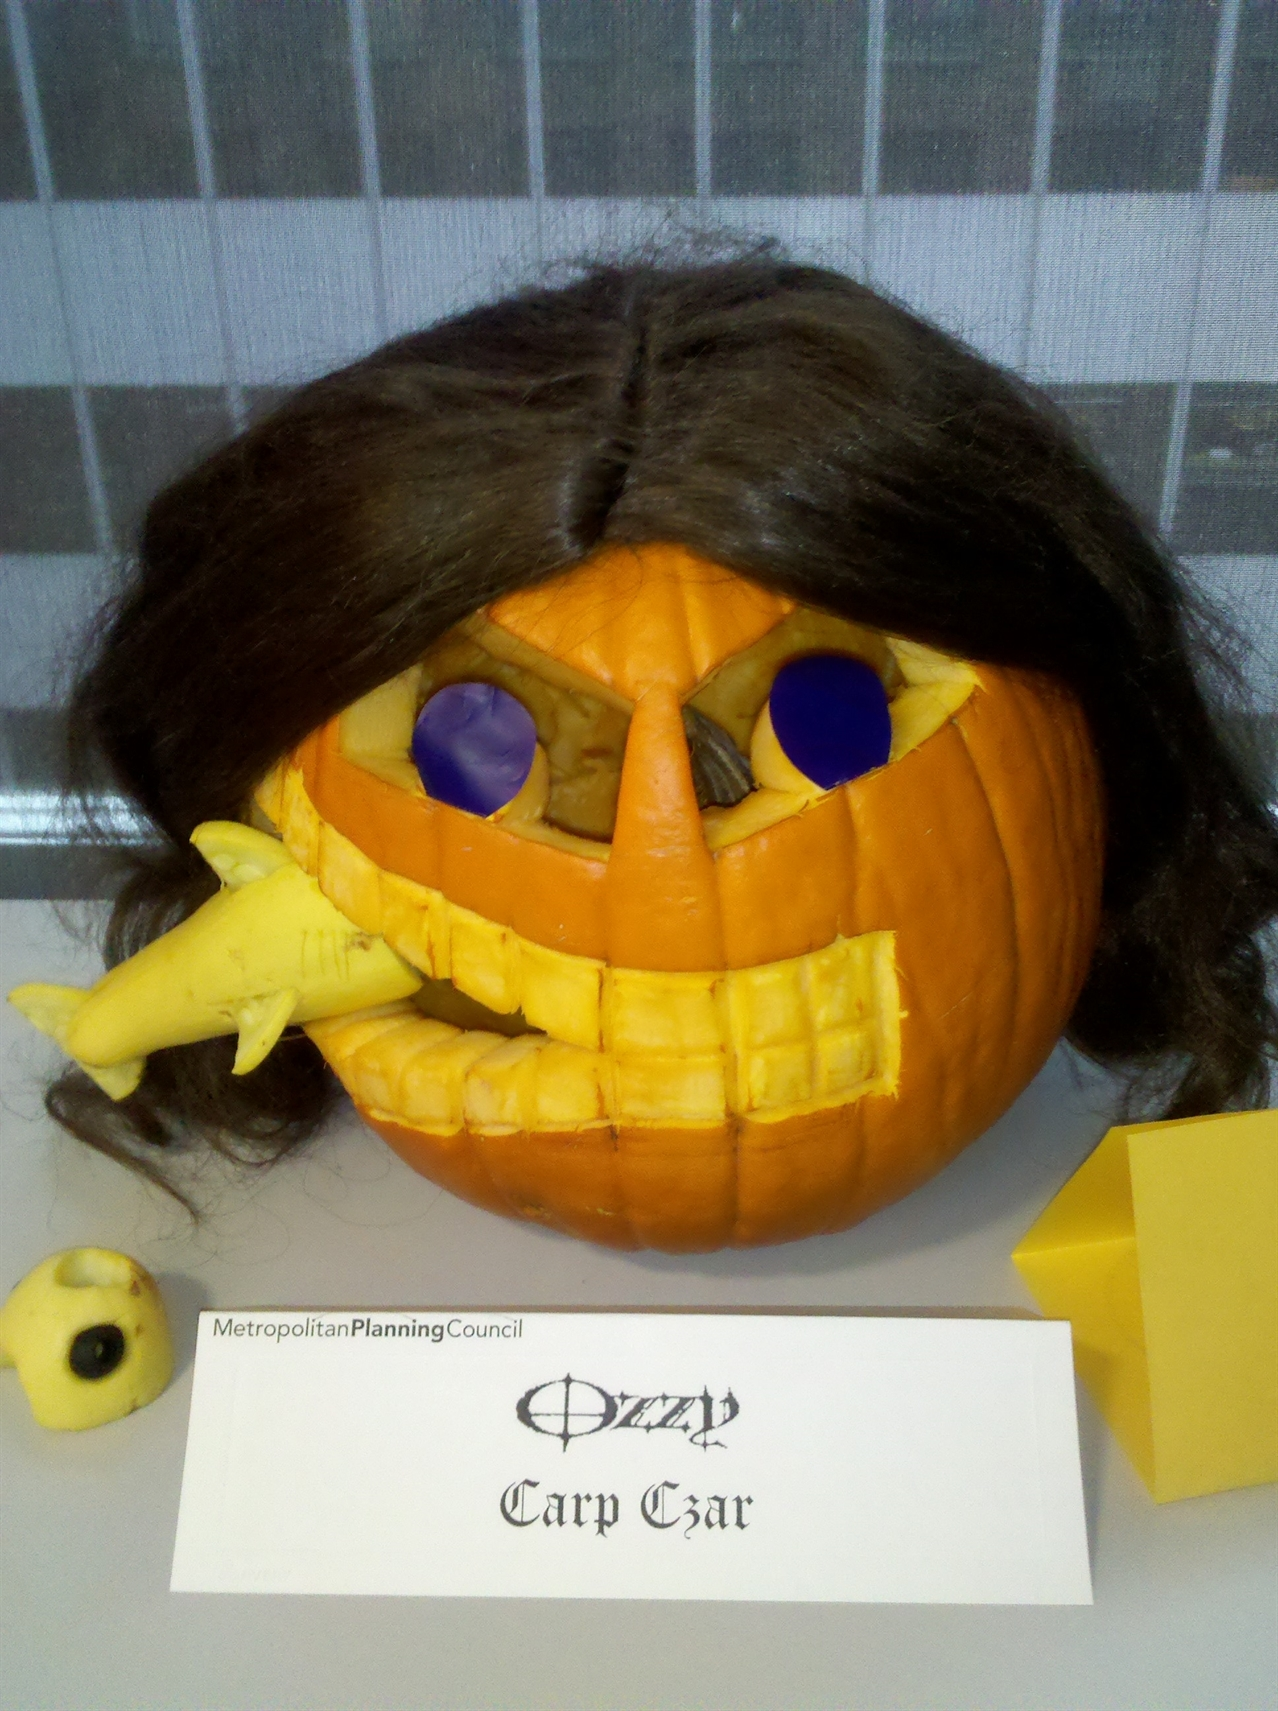 Mpc s pumpkin carving skills tested at marquette building